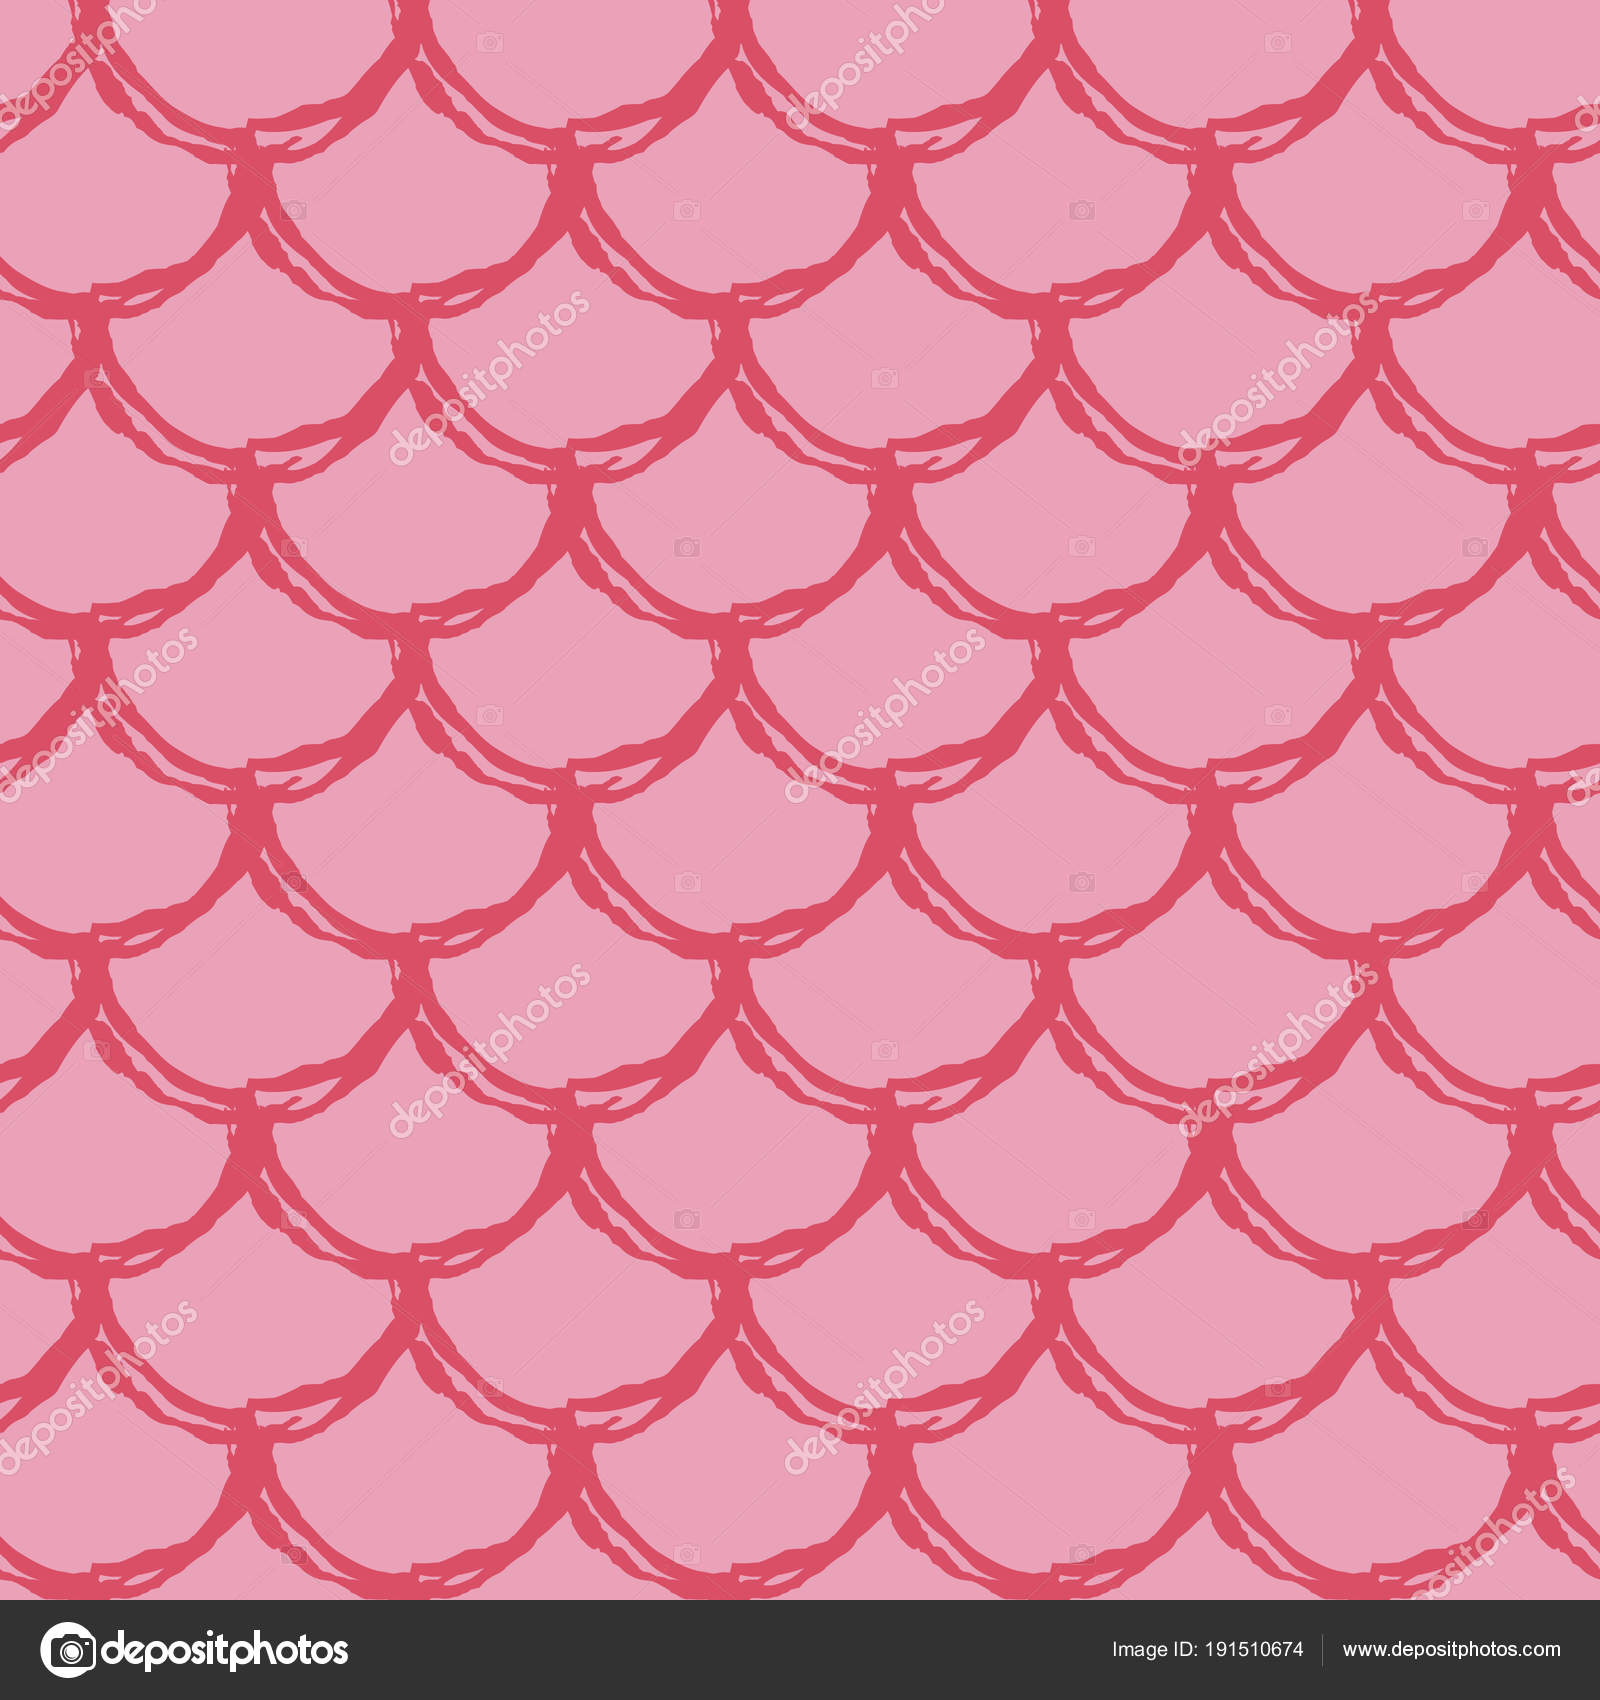 Tillable Background For Girl Fabric Textile Design Wrapping Paper Swimwear Or Wallpaper Blue Little Mermaid With Fish Scale